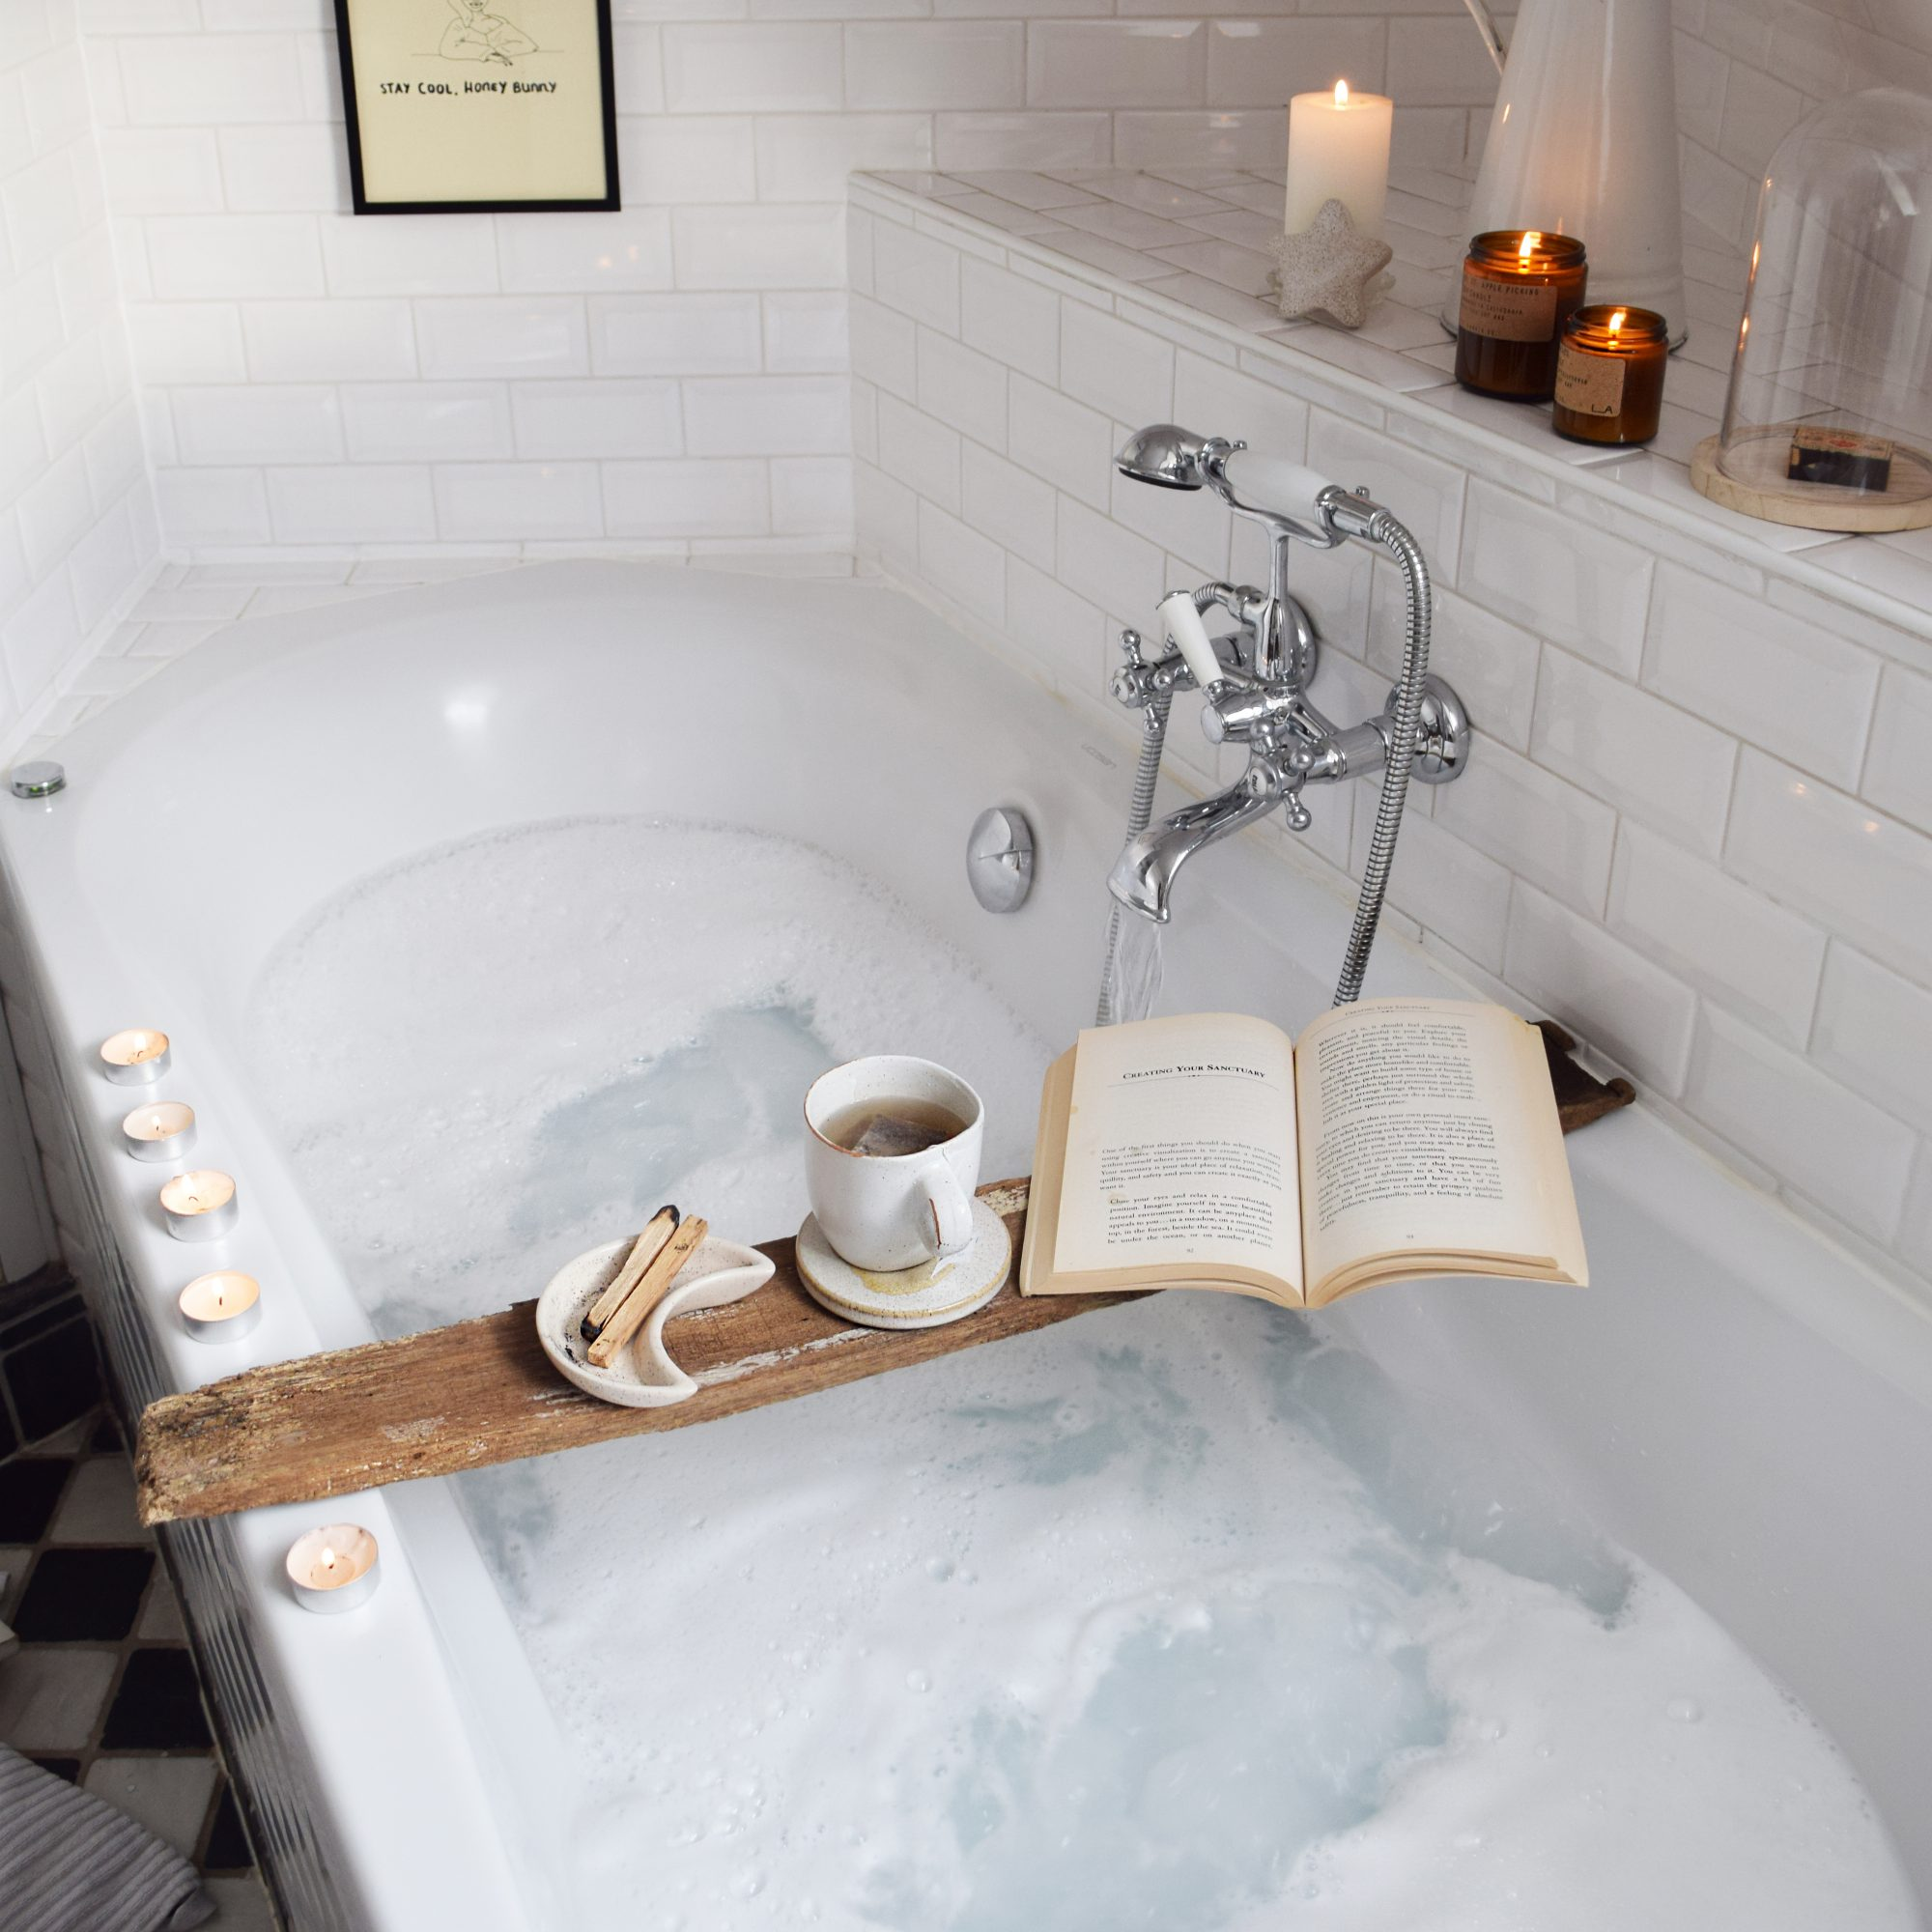 How to relax during the colder months